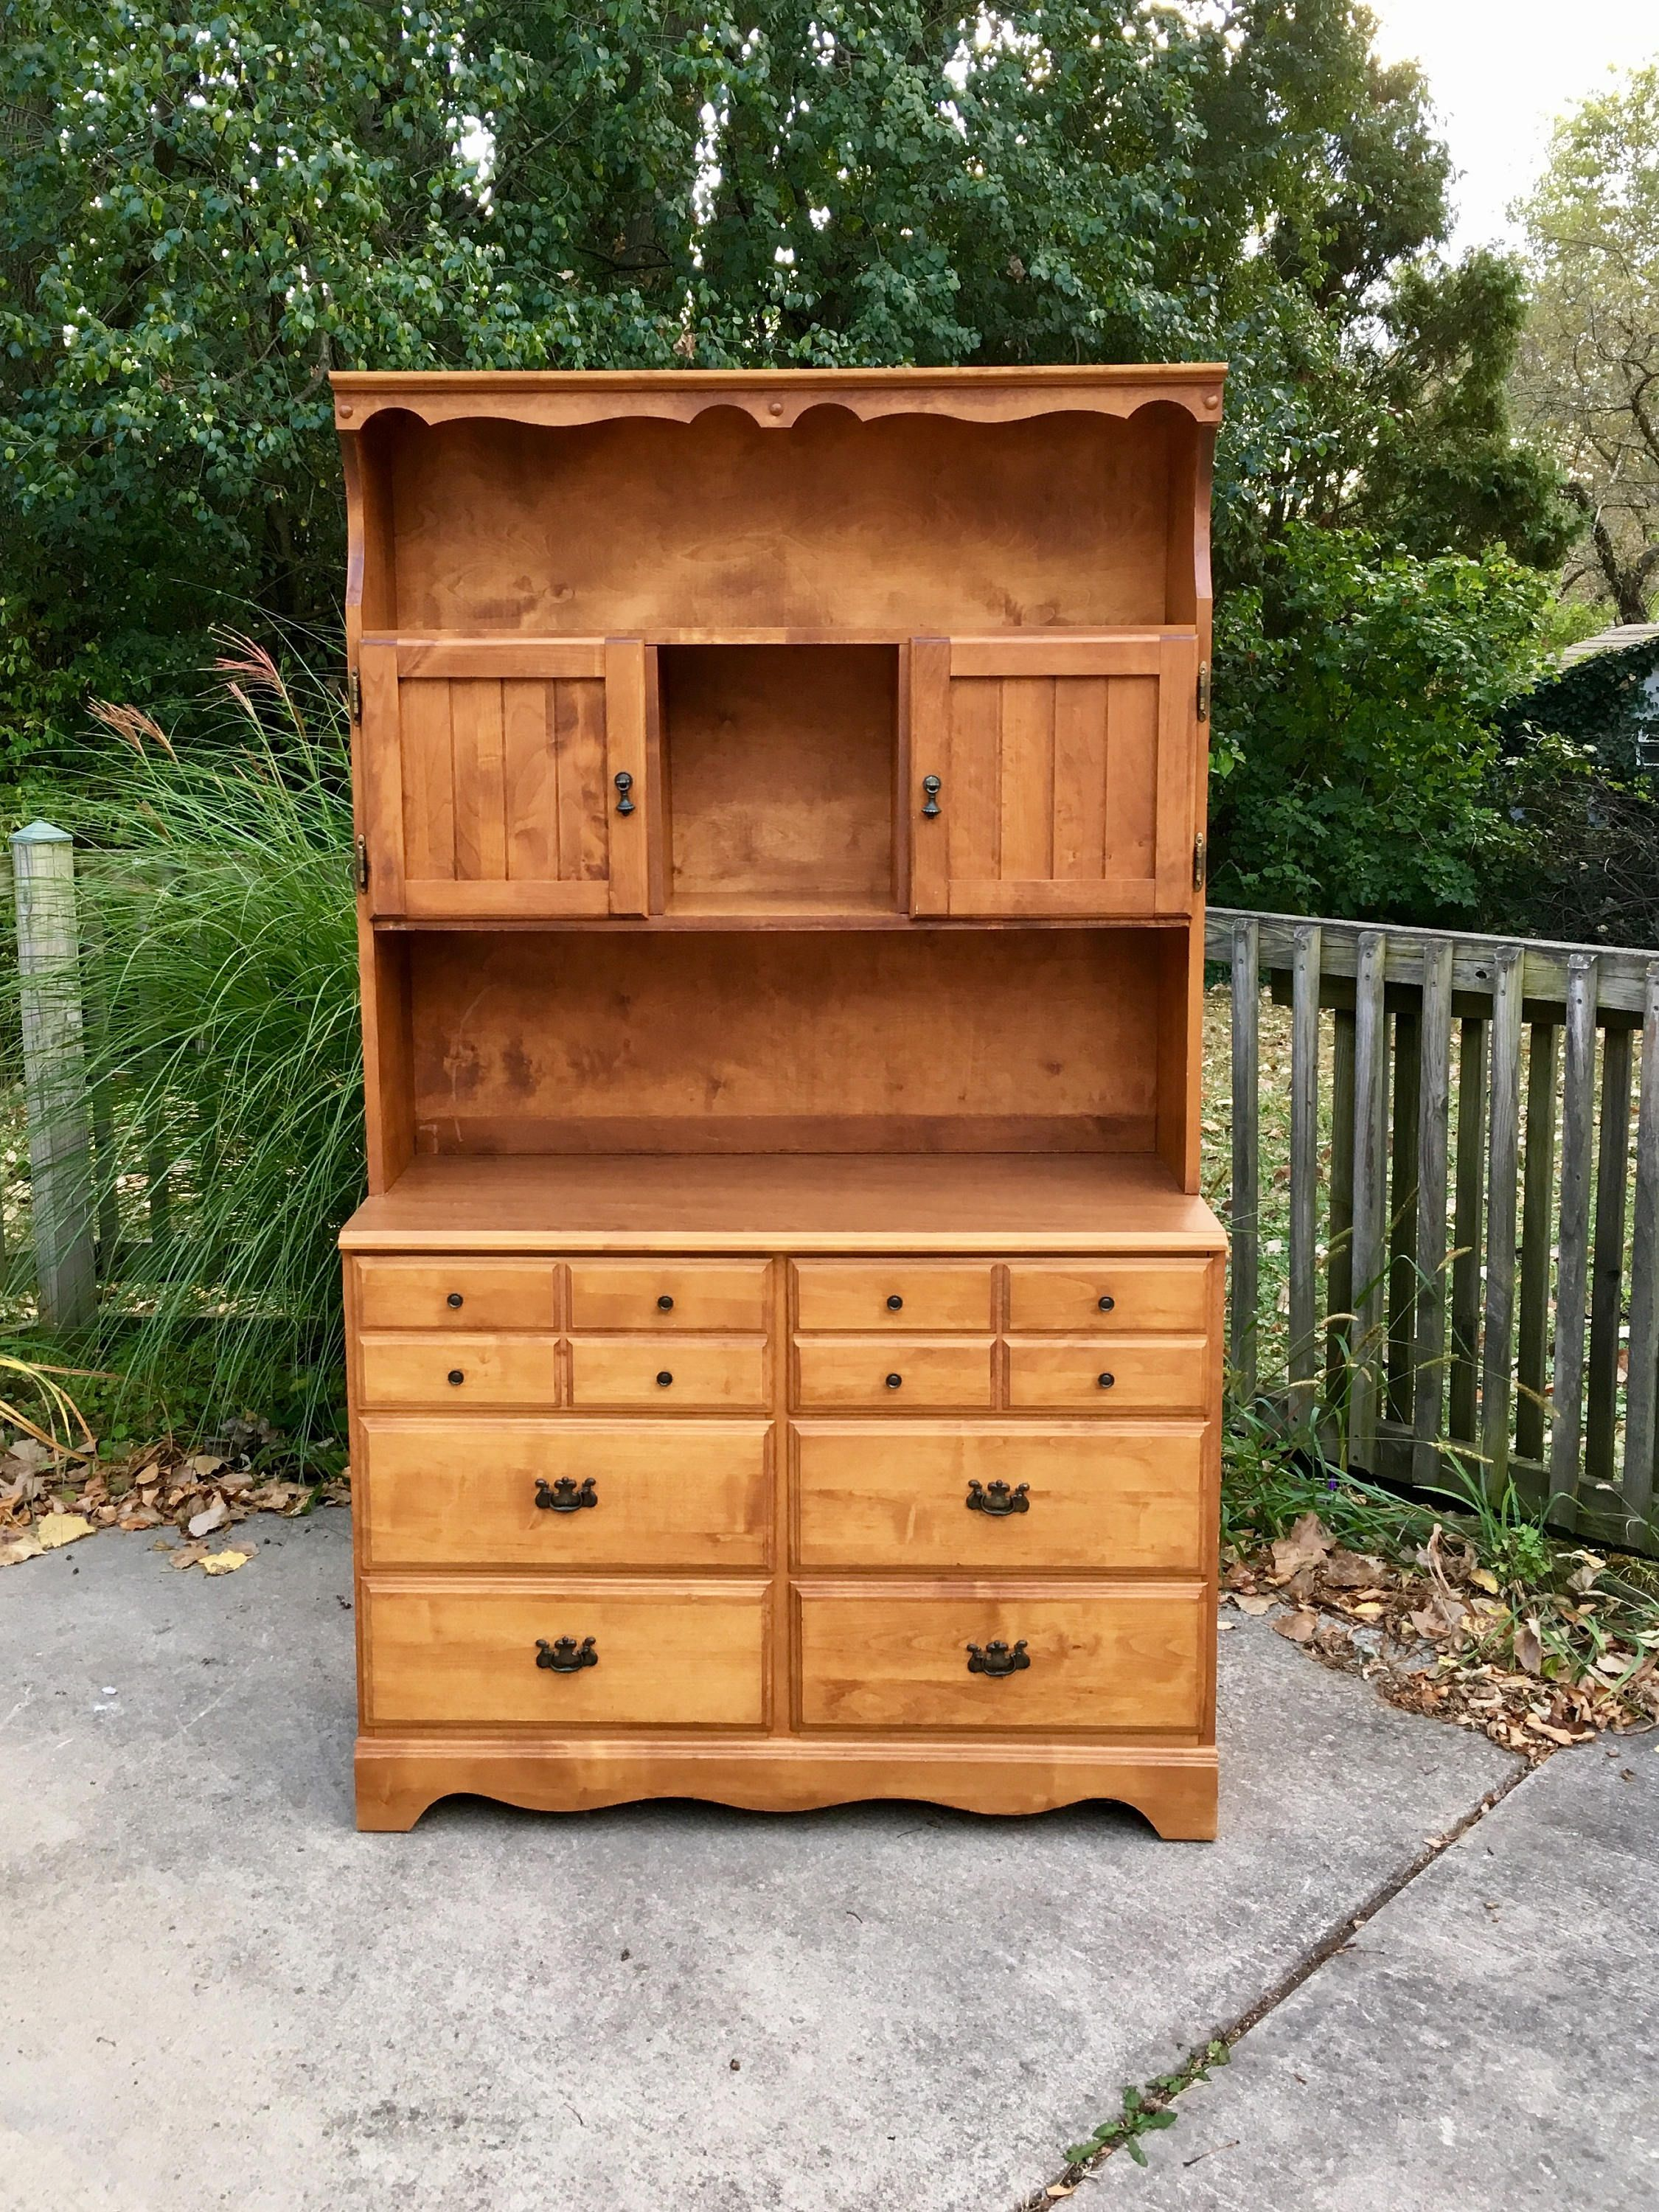 bedroom finish bedside plans nightstands night cupboard metal cottage maple used aspen table design unfinished vintage japanese cottages glass cherry wood bronze nightstand small